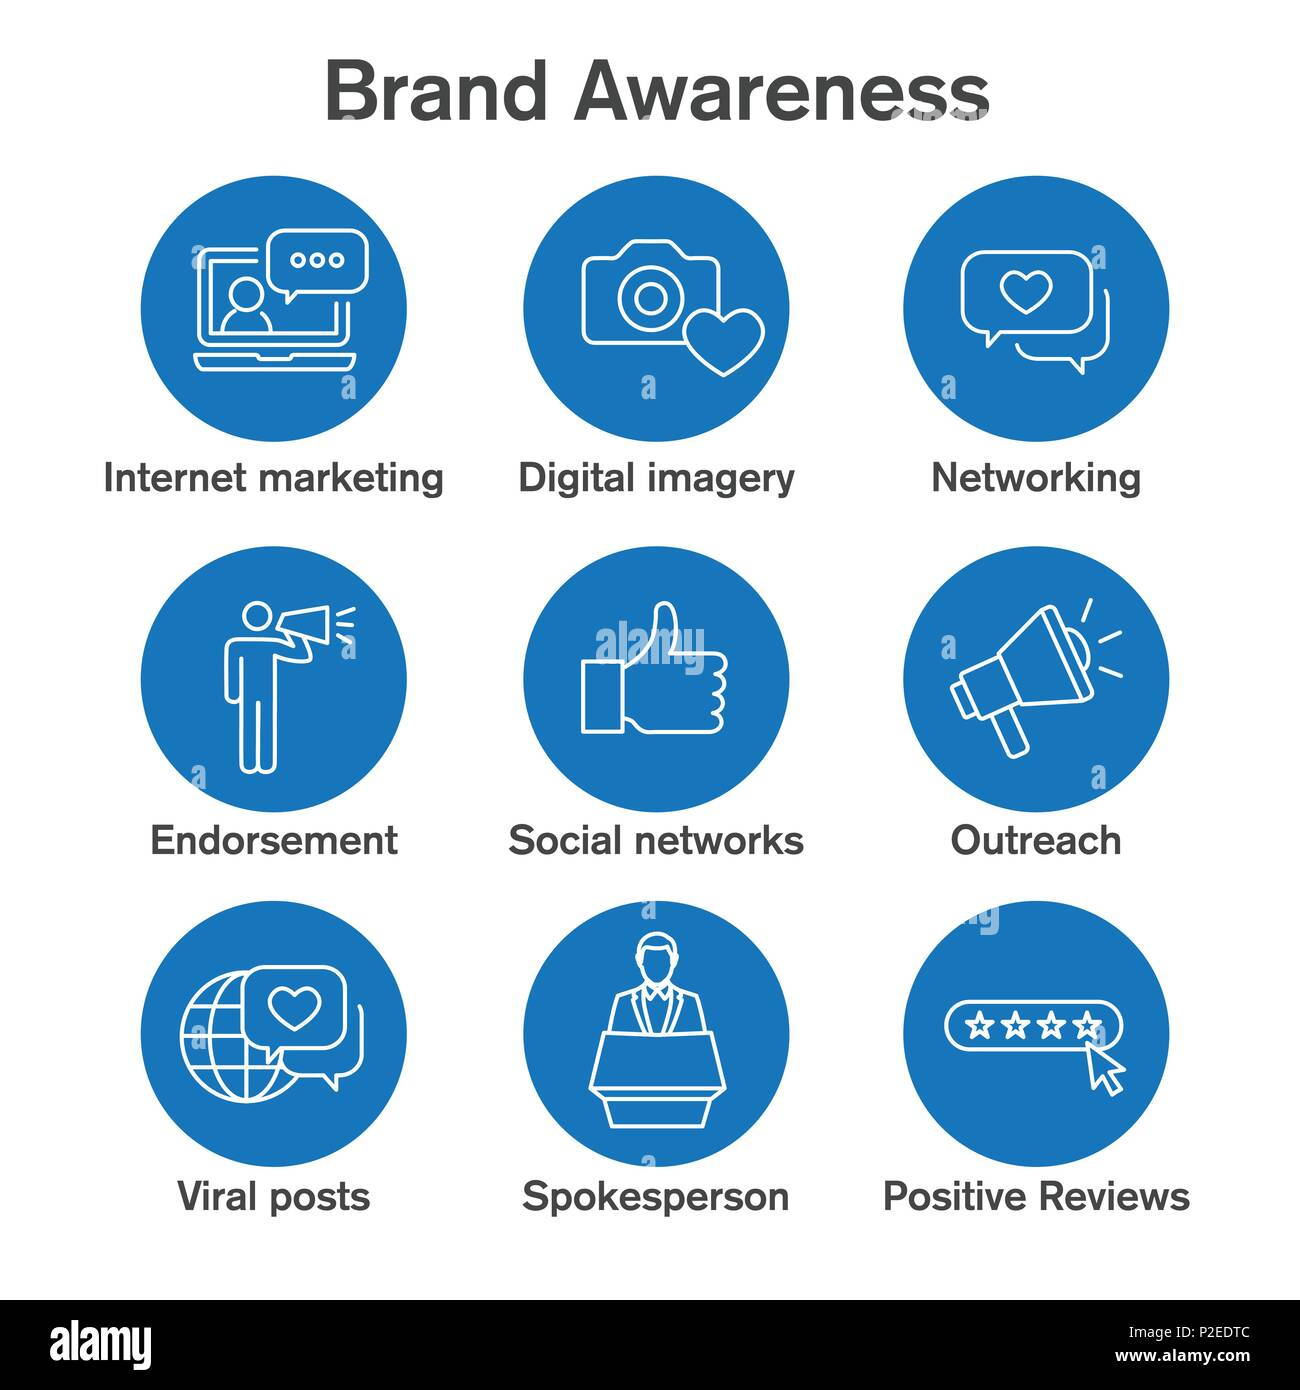 Brand Ambassador & Spokesperson Icon Set With Networking